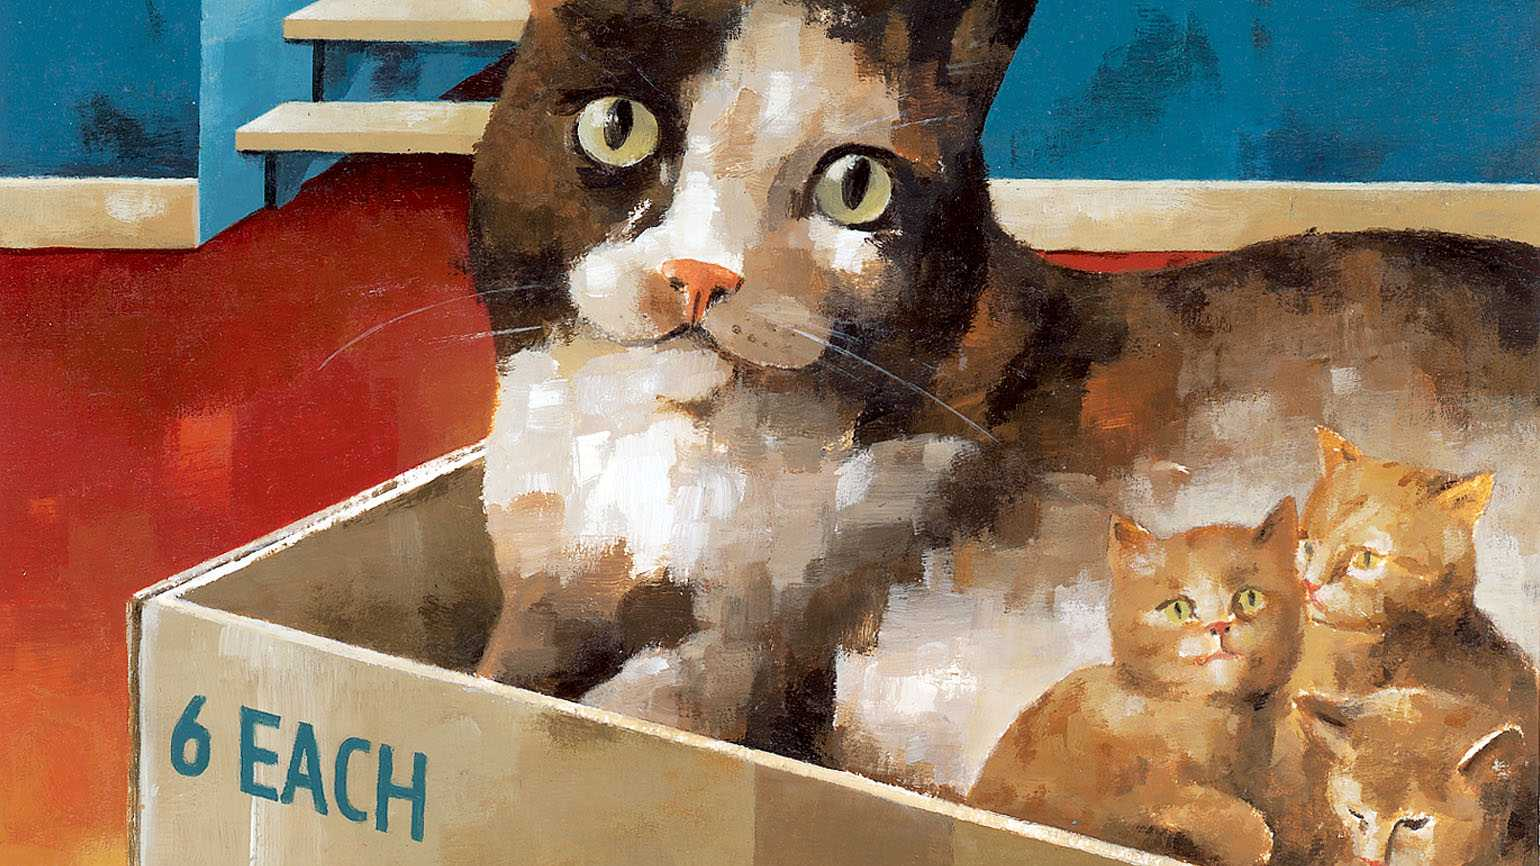 Pancake with her litter of kittens in a box.